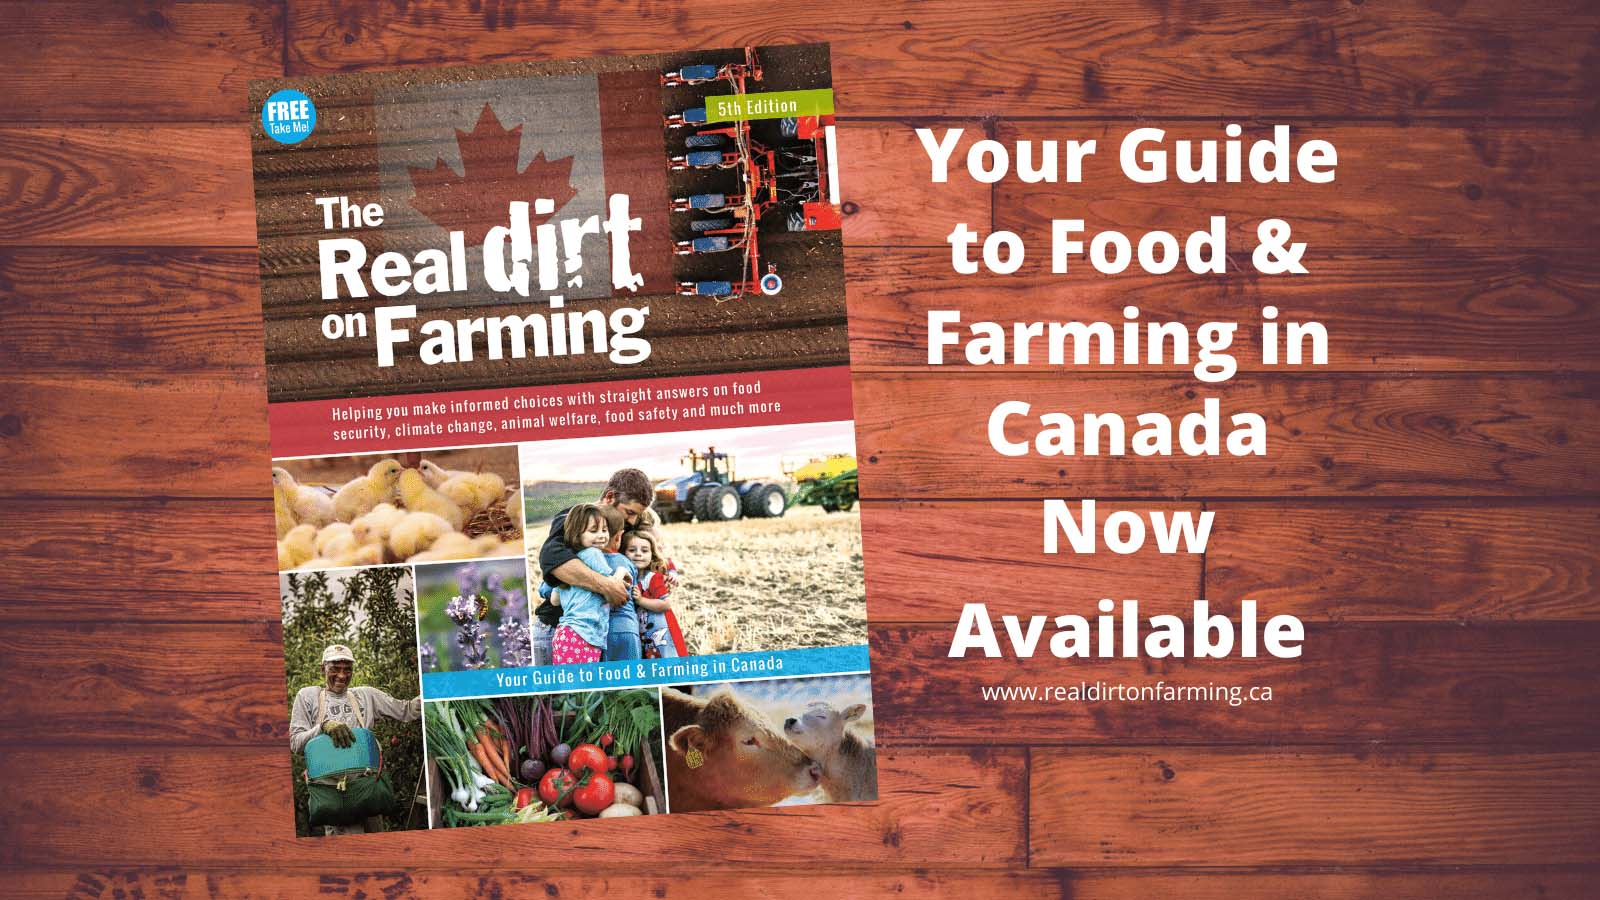 The Fifth Edition of The Real Dirt on Farming Now Available